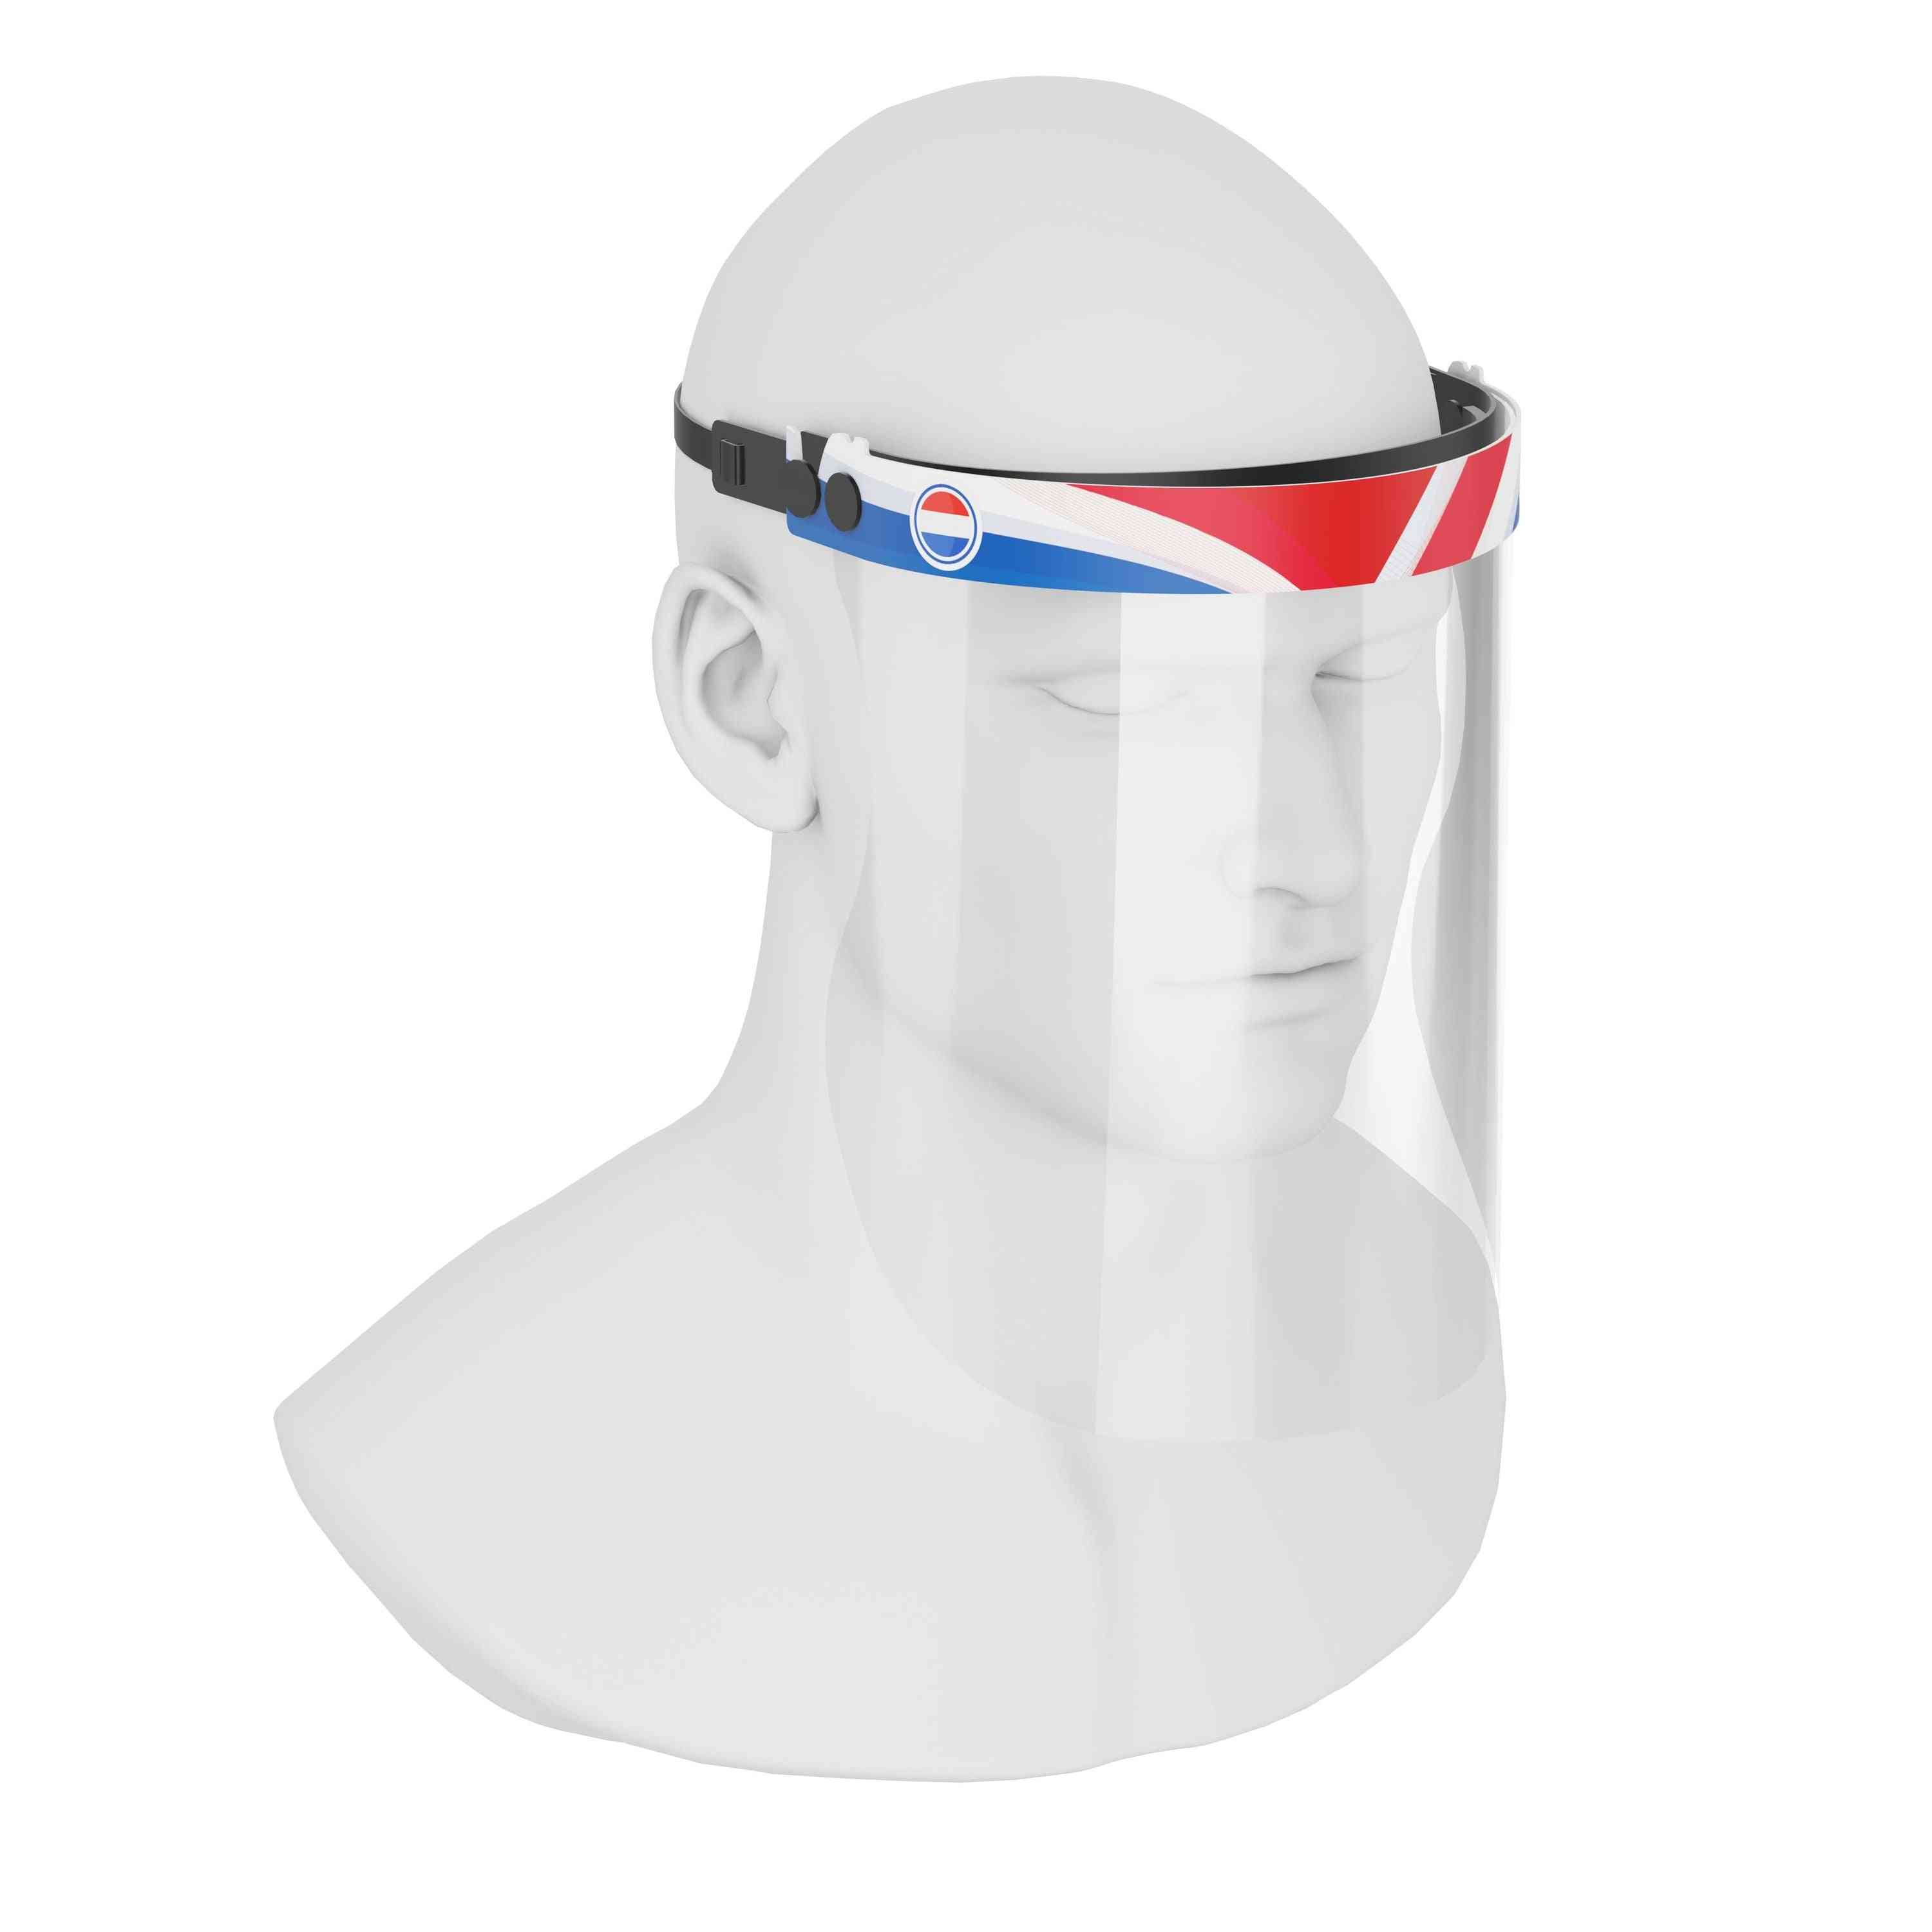 Isolay Face Shield Netherlands